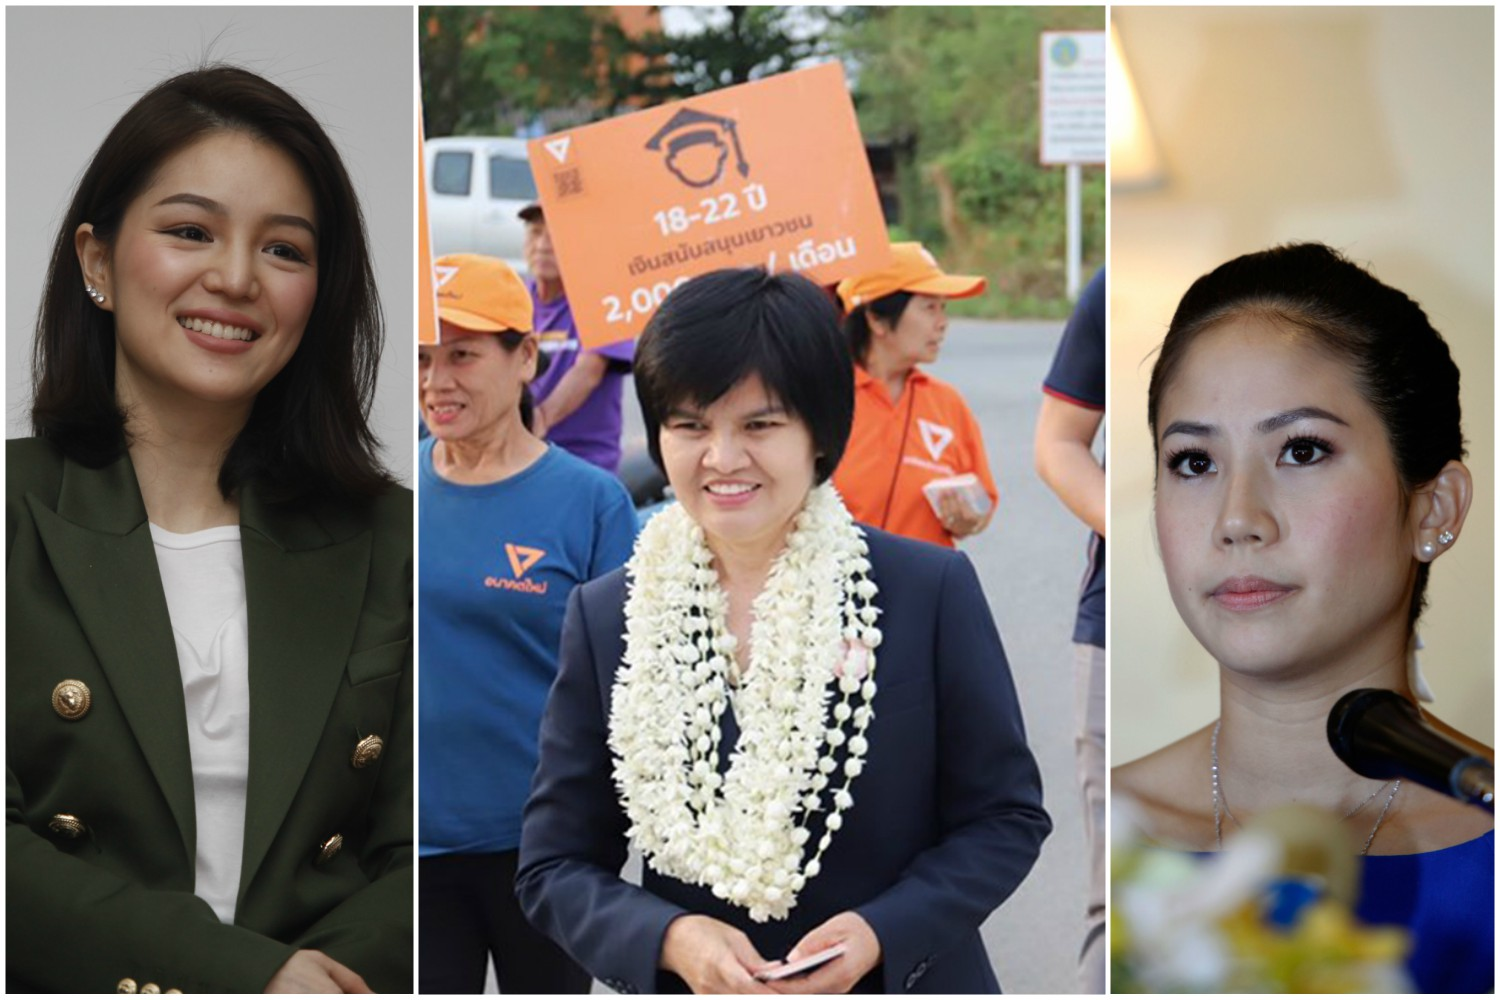 The three new MPs endorsed by the Election Commission on Tuesday: (from left) Watanya Wongopas, party-list MP of Palang Pracharath; Srinuan Boonlue, Chiang Mai MP, Future Forward; and Jitpas Kridakorn, party-list MP of Democrat.